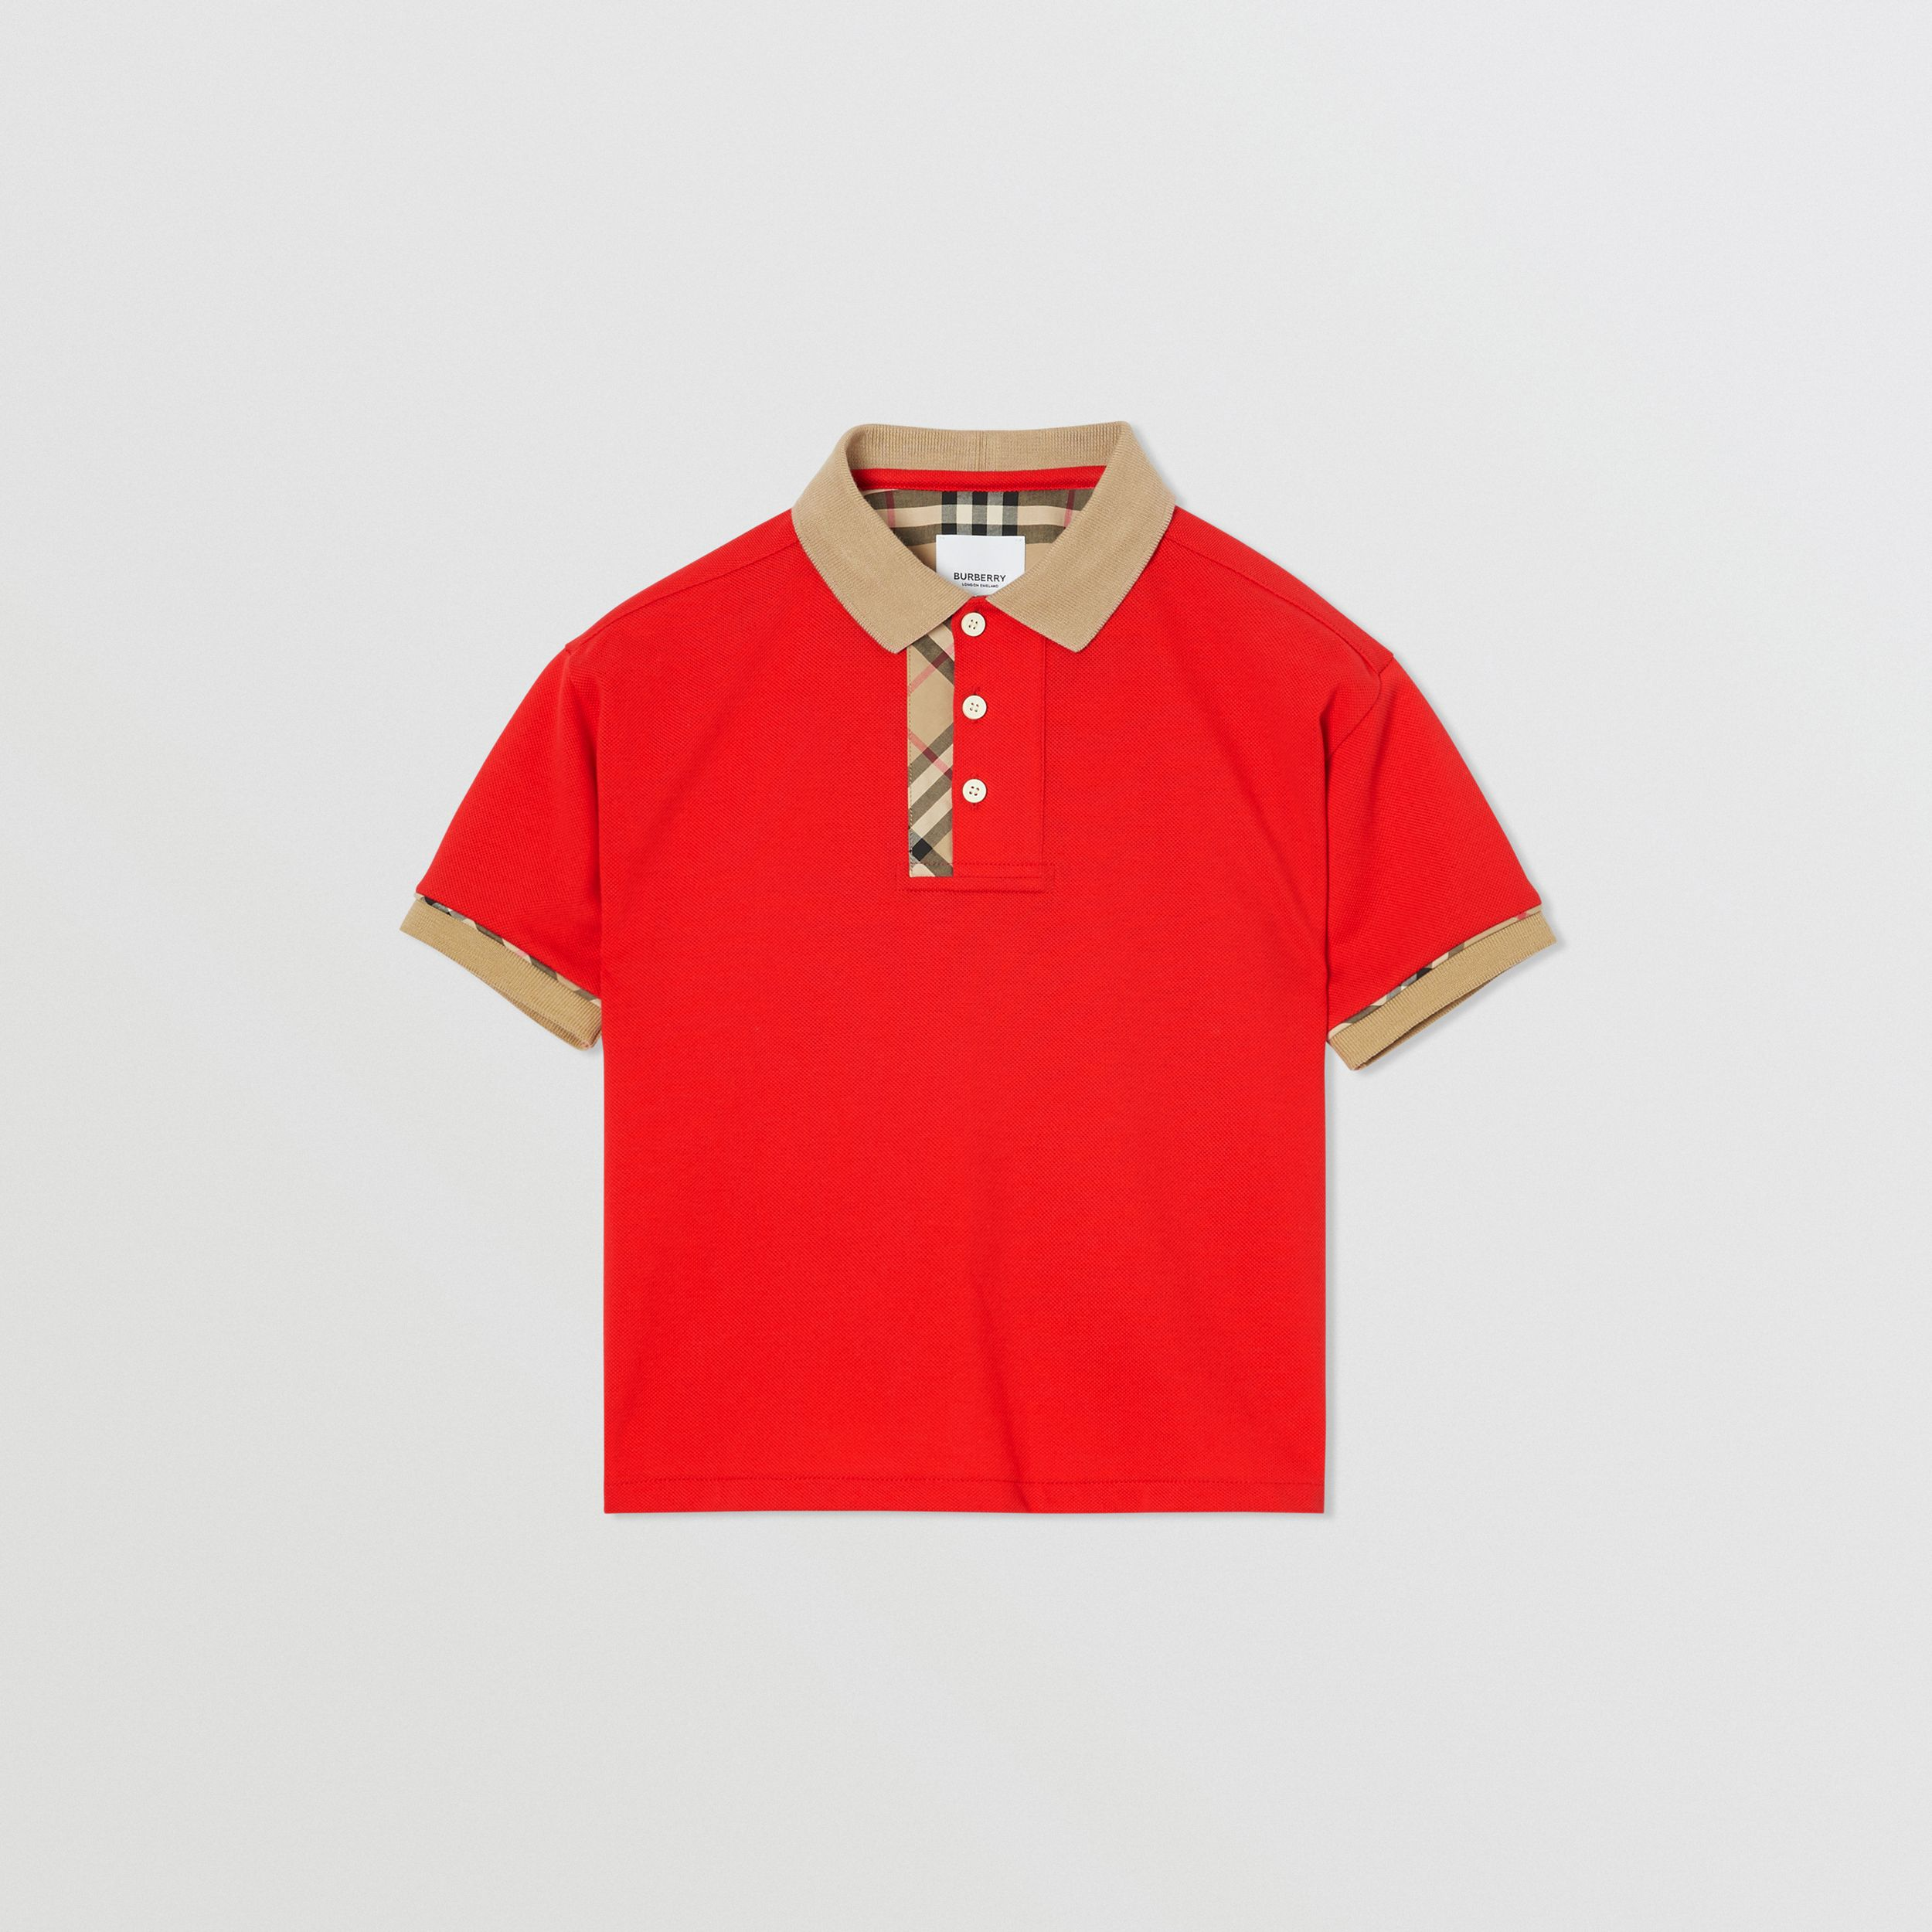 Vintage Check Trim Cotton Polo Shirt in Bright Red | Burberry - 1